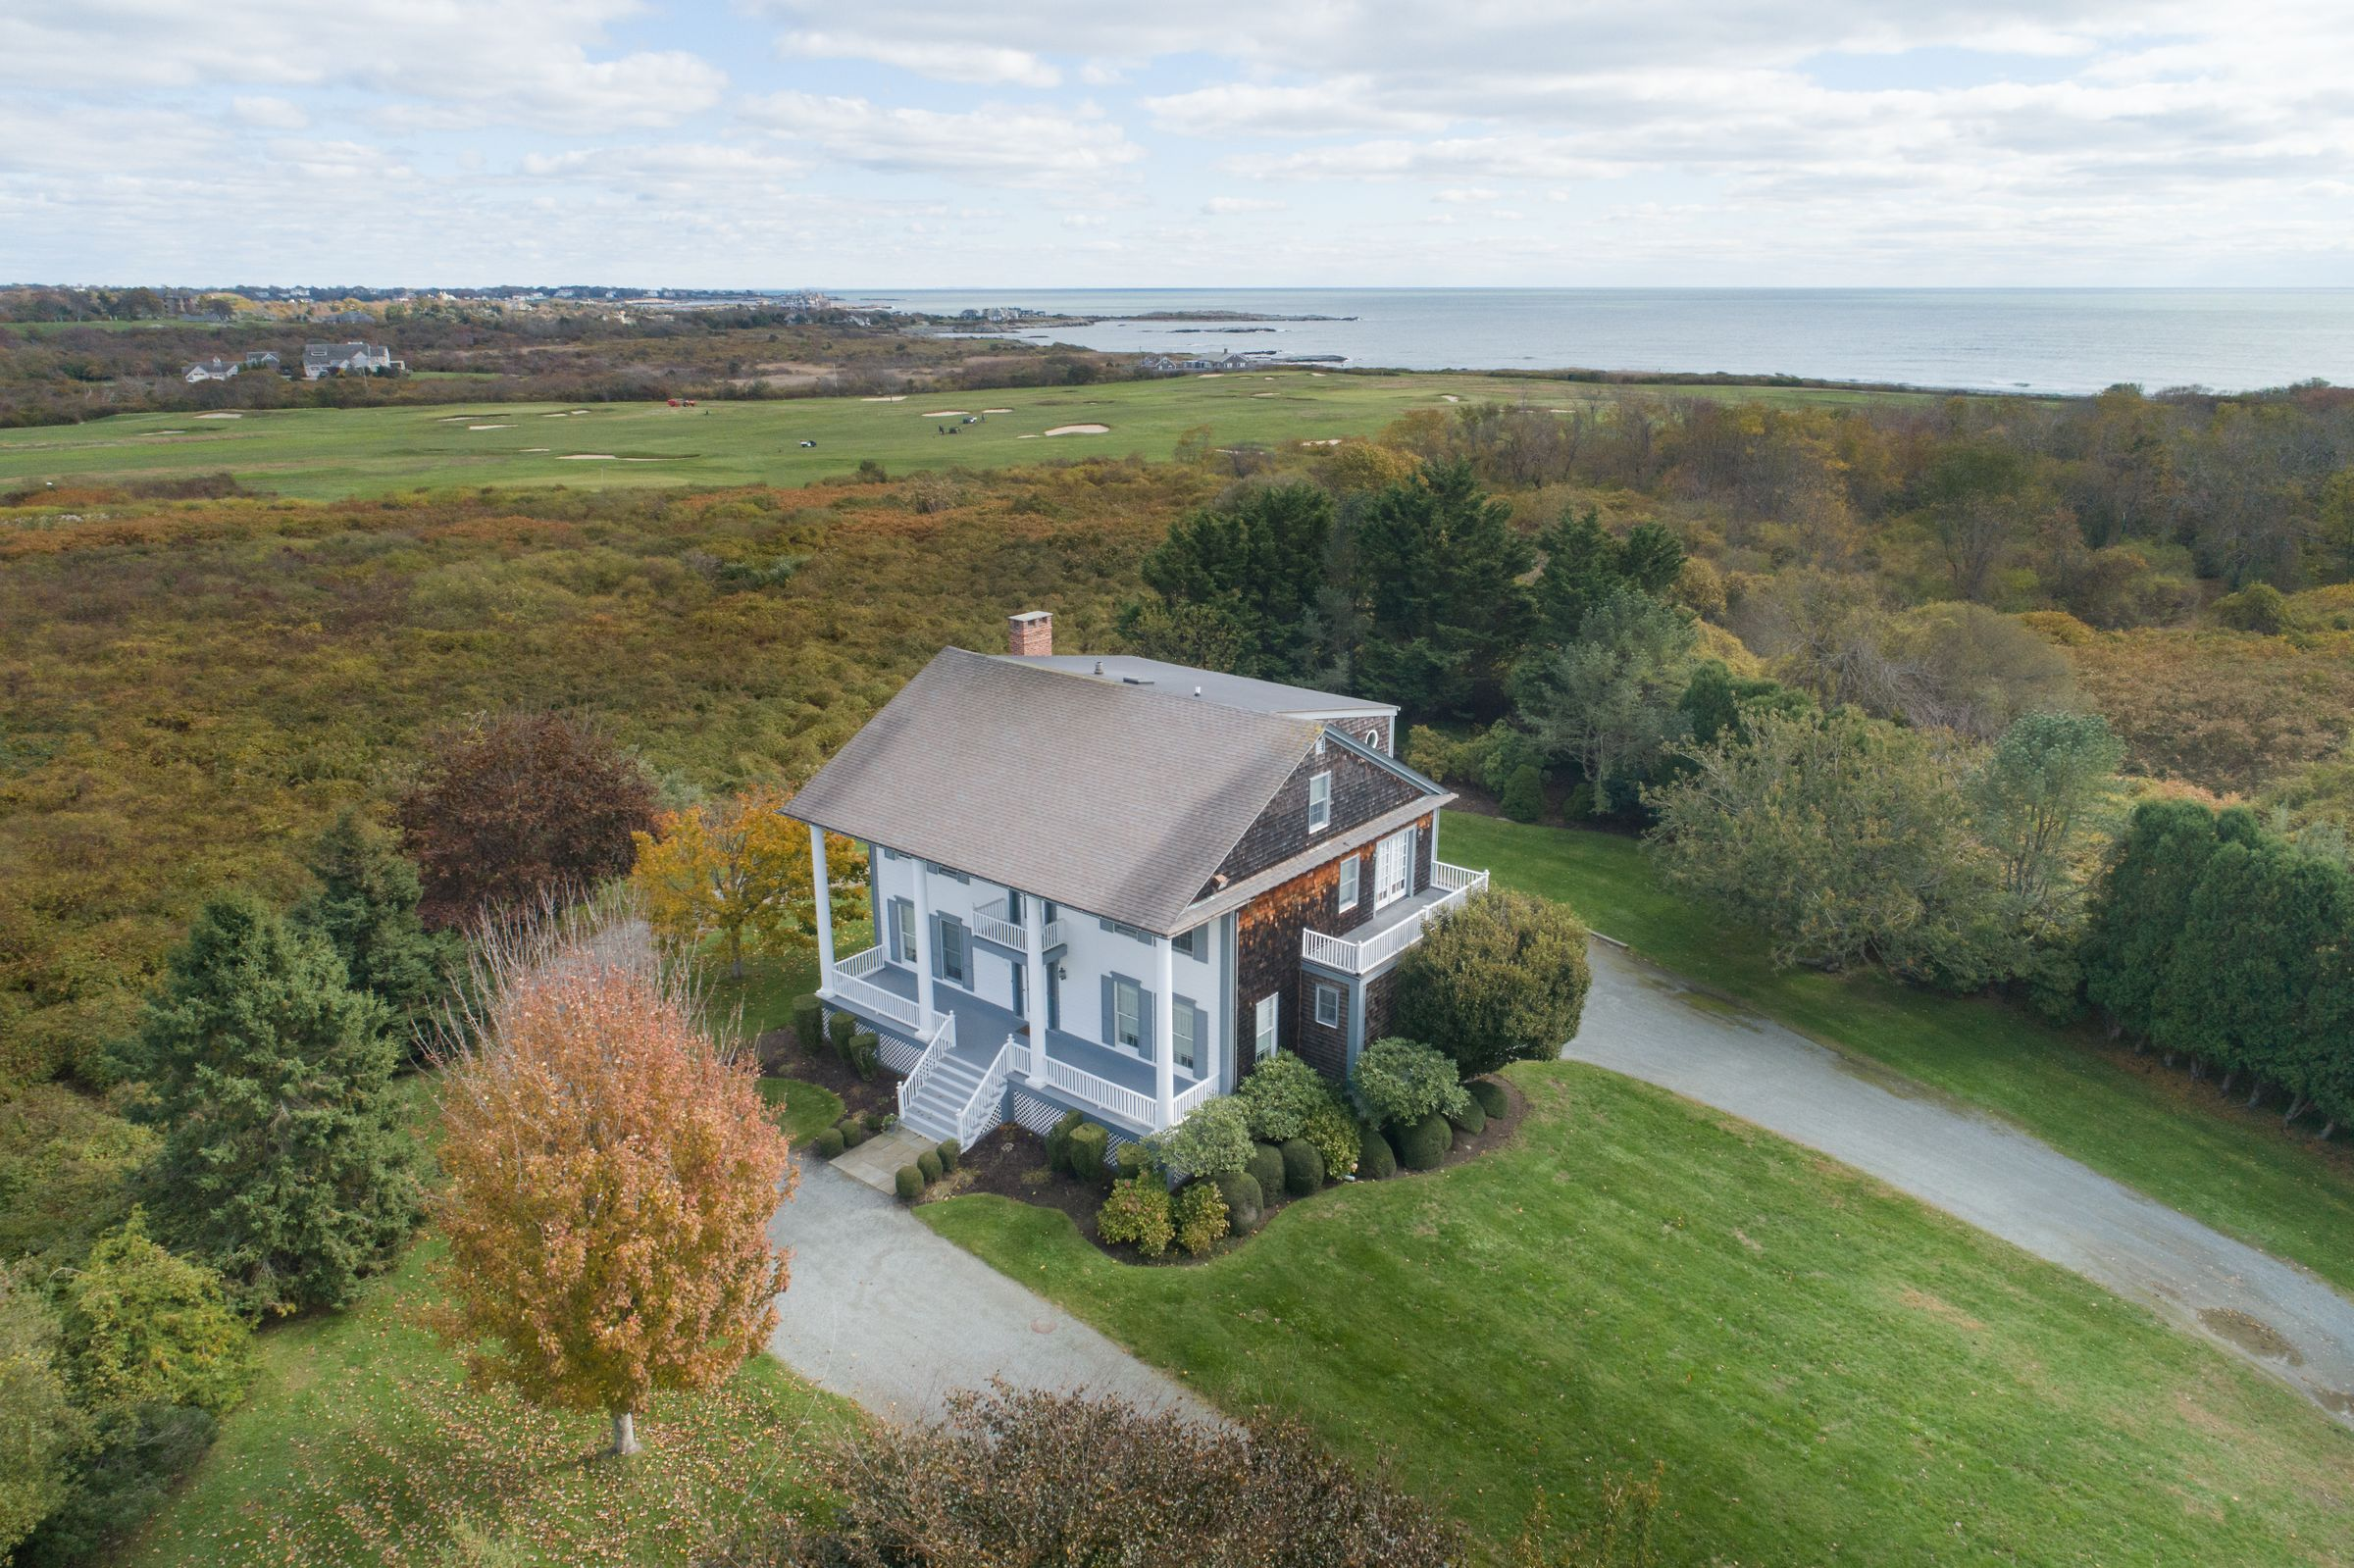 Castle Hill Colonial Sells For $1.8 Million